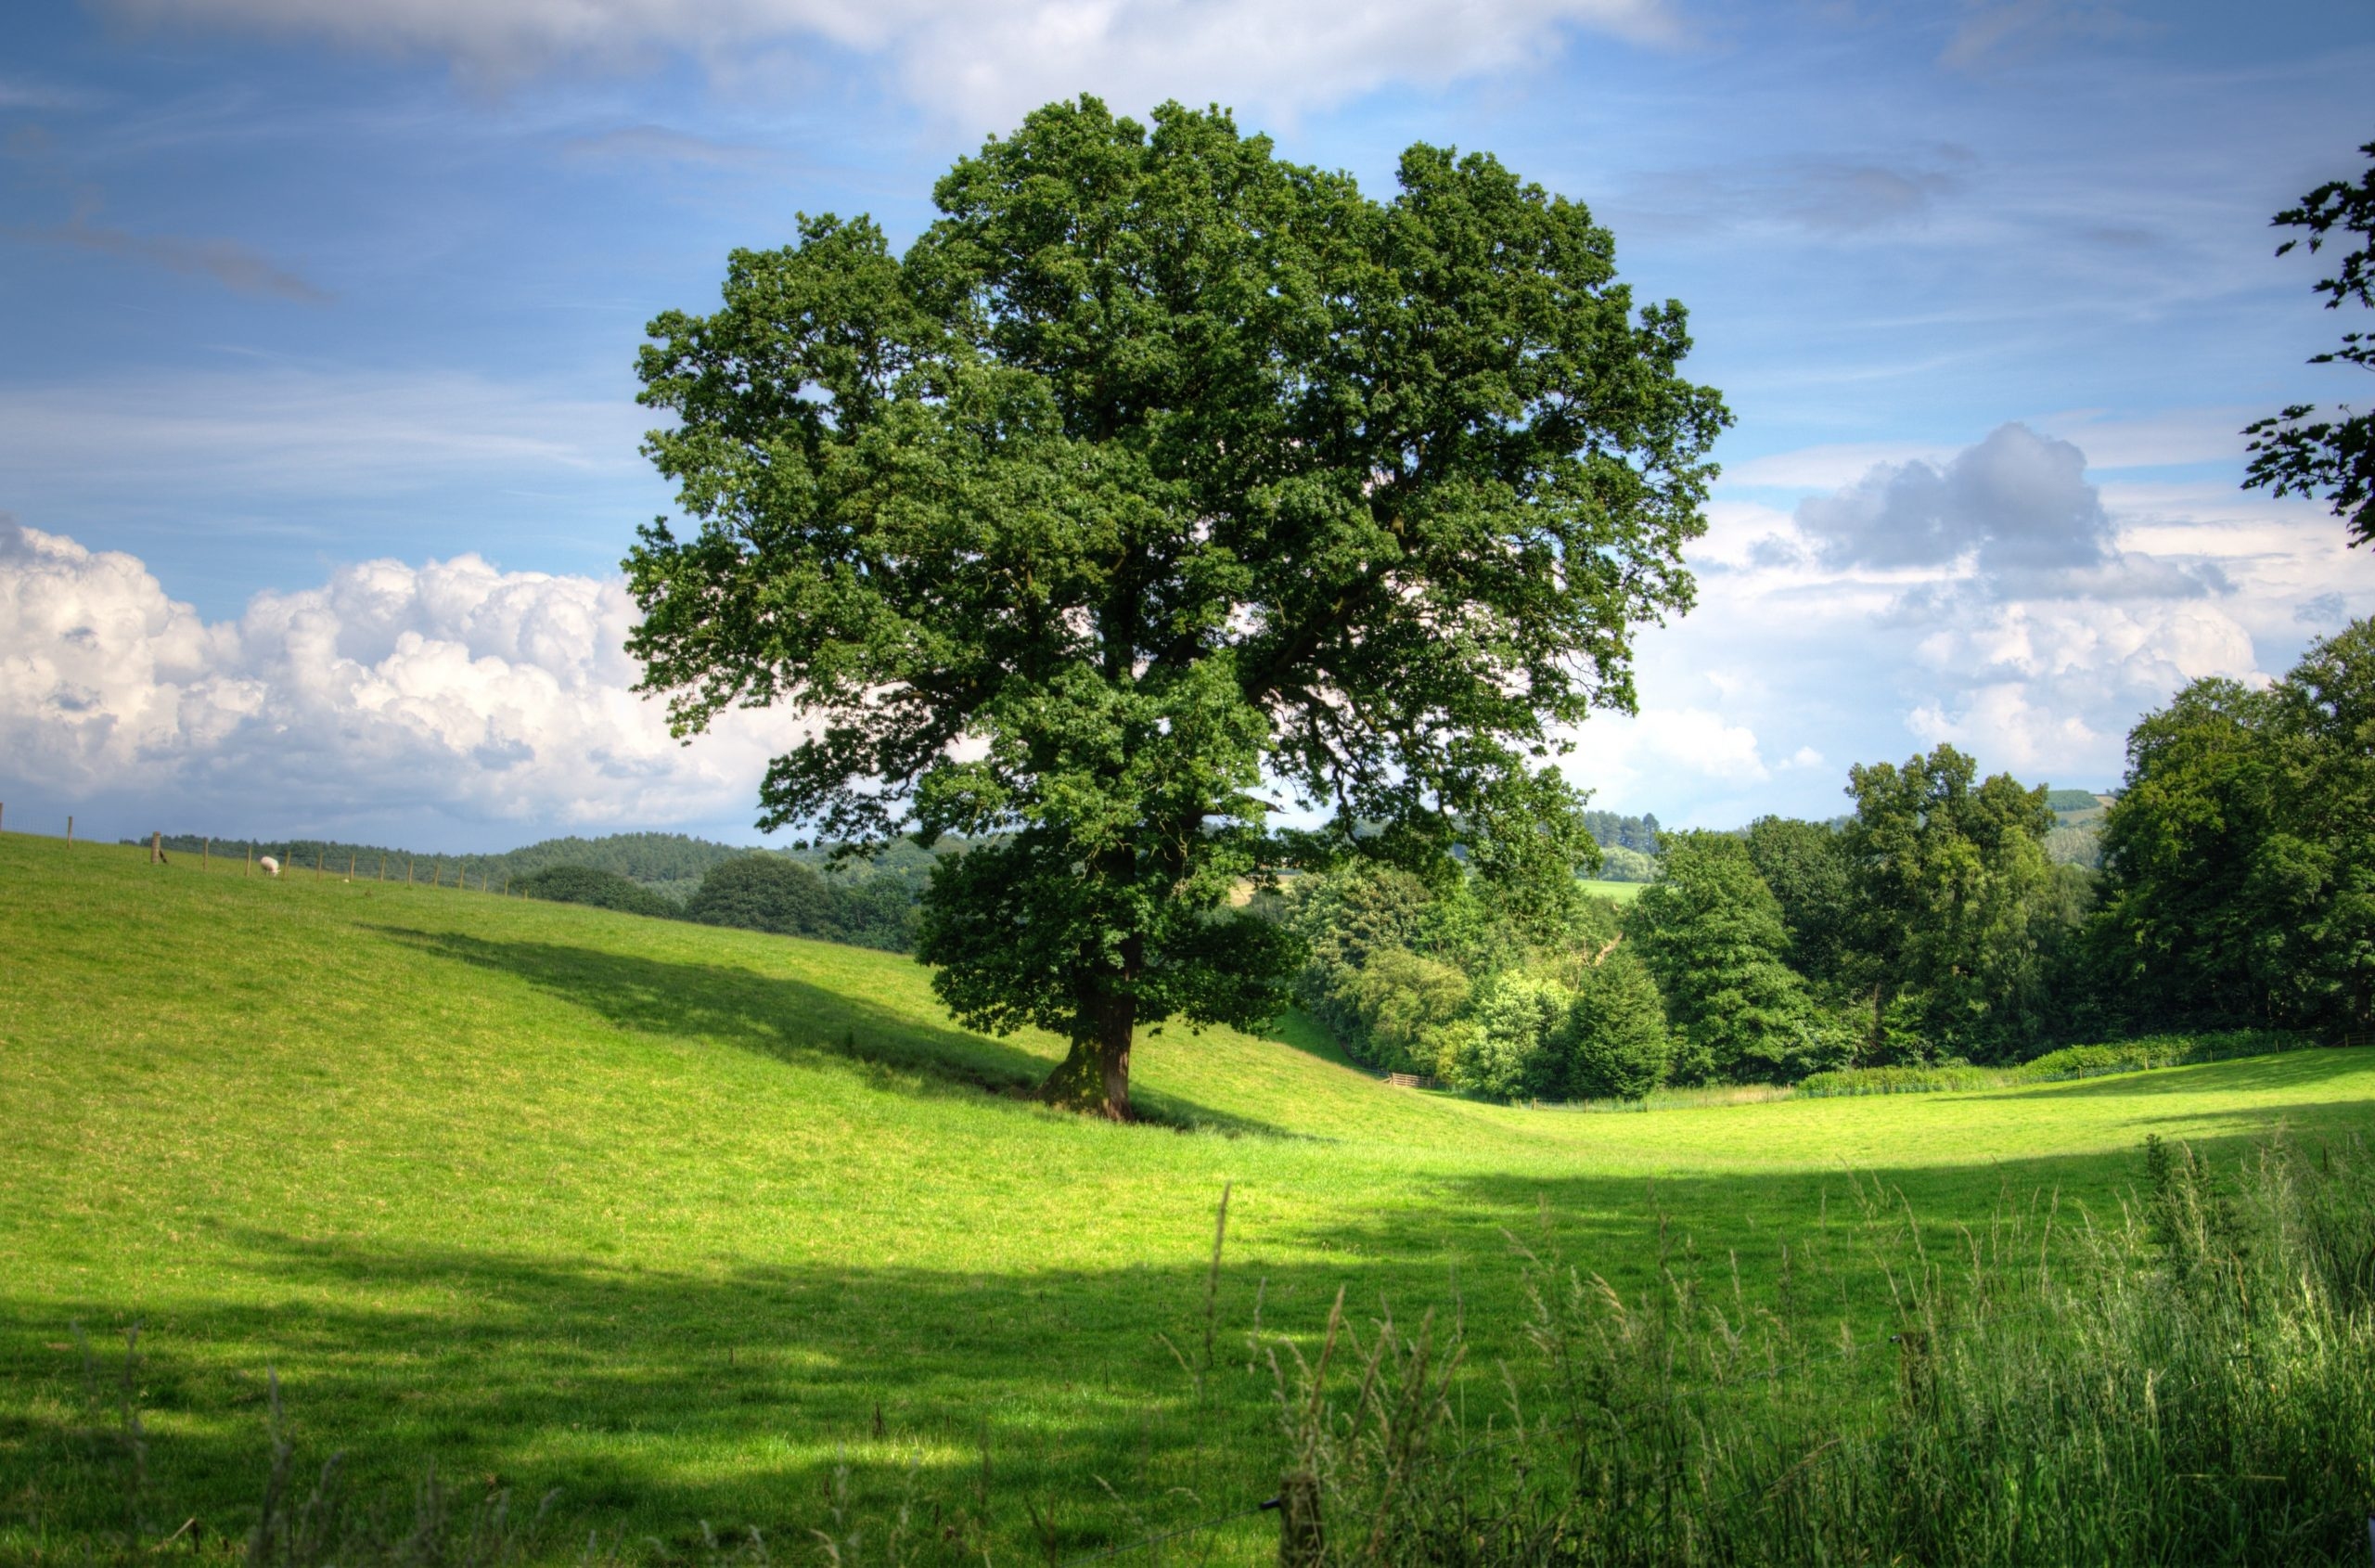 Applications Invited for the Tree Futures Grant